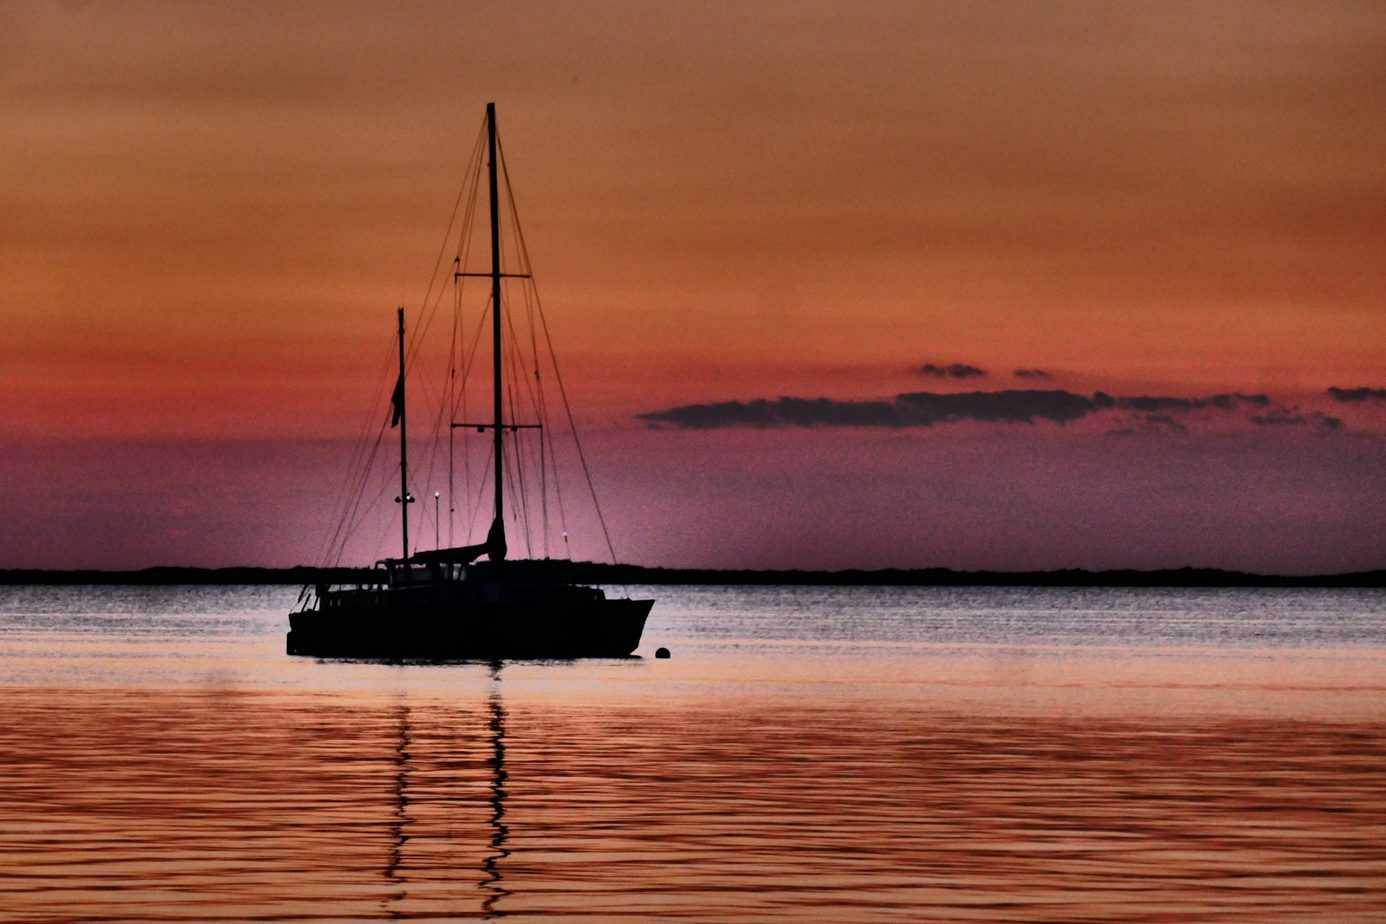 most romantic places to visit in the us - sailboat on water during colorful sunset